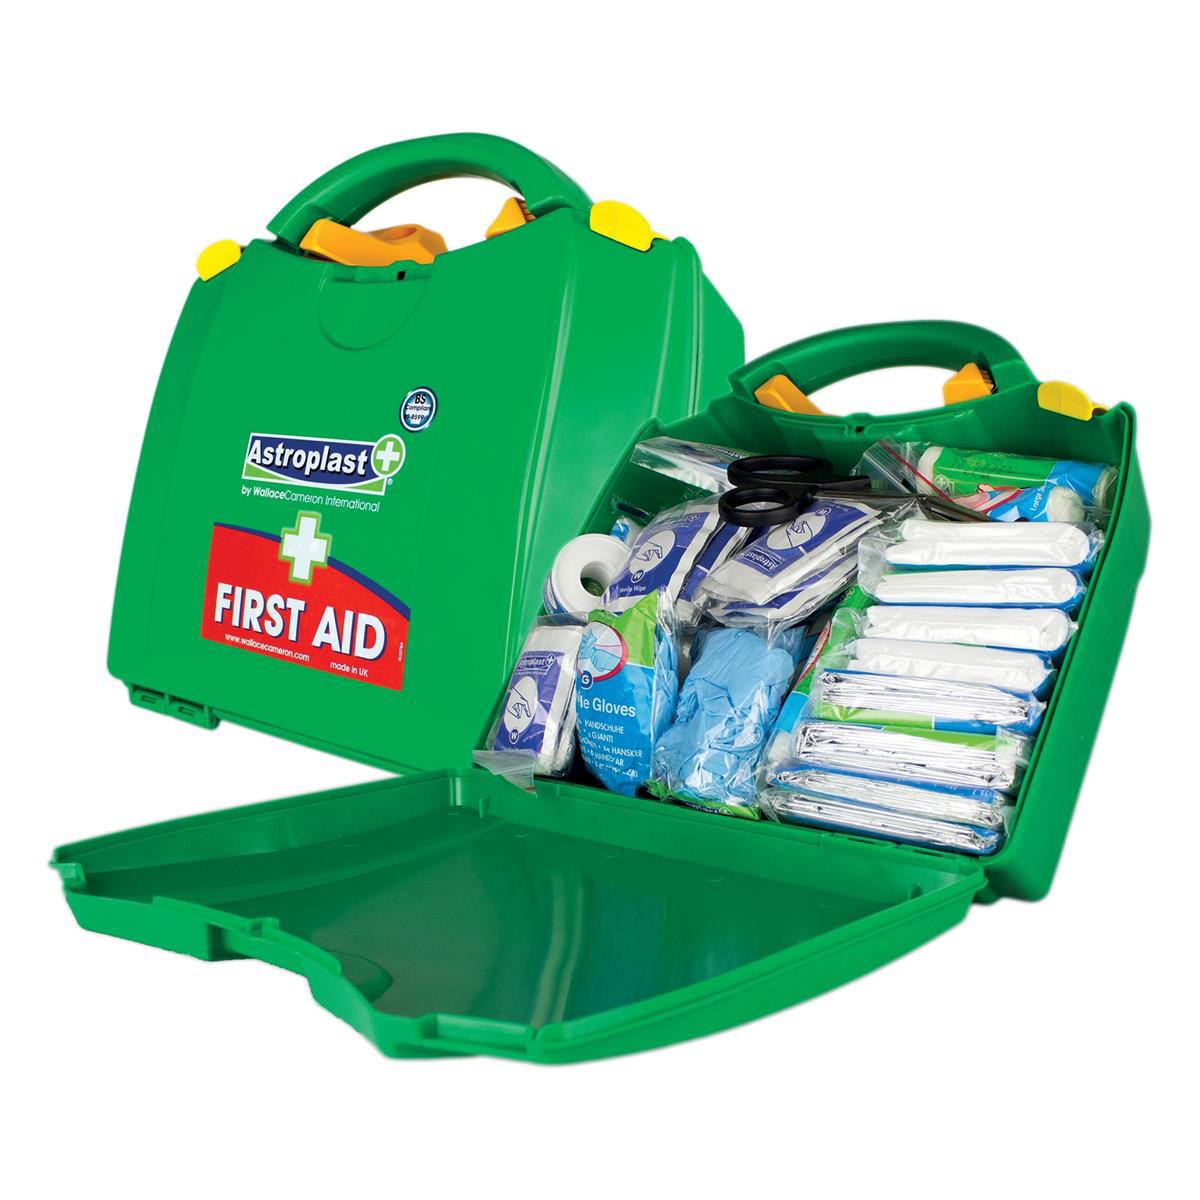 Equipment Wallace Cameron Green Box HS1 First-Aid Kit Traditional 10 Person Ref 1002278